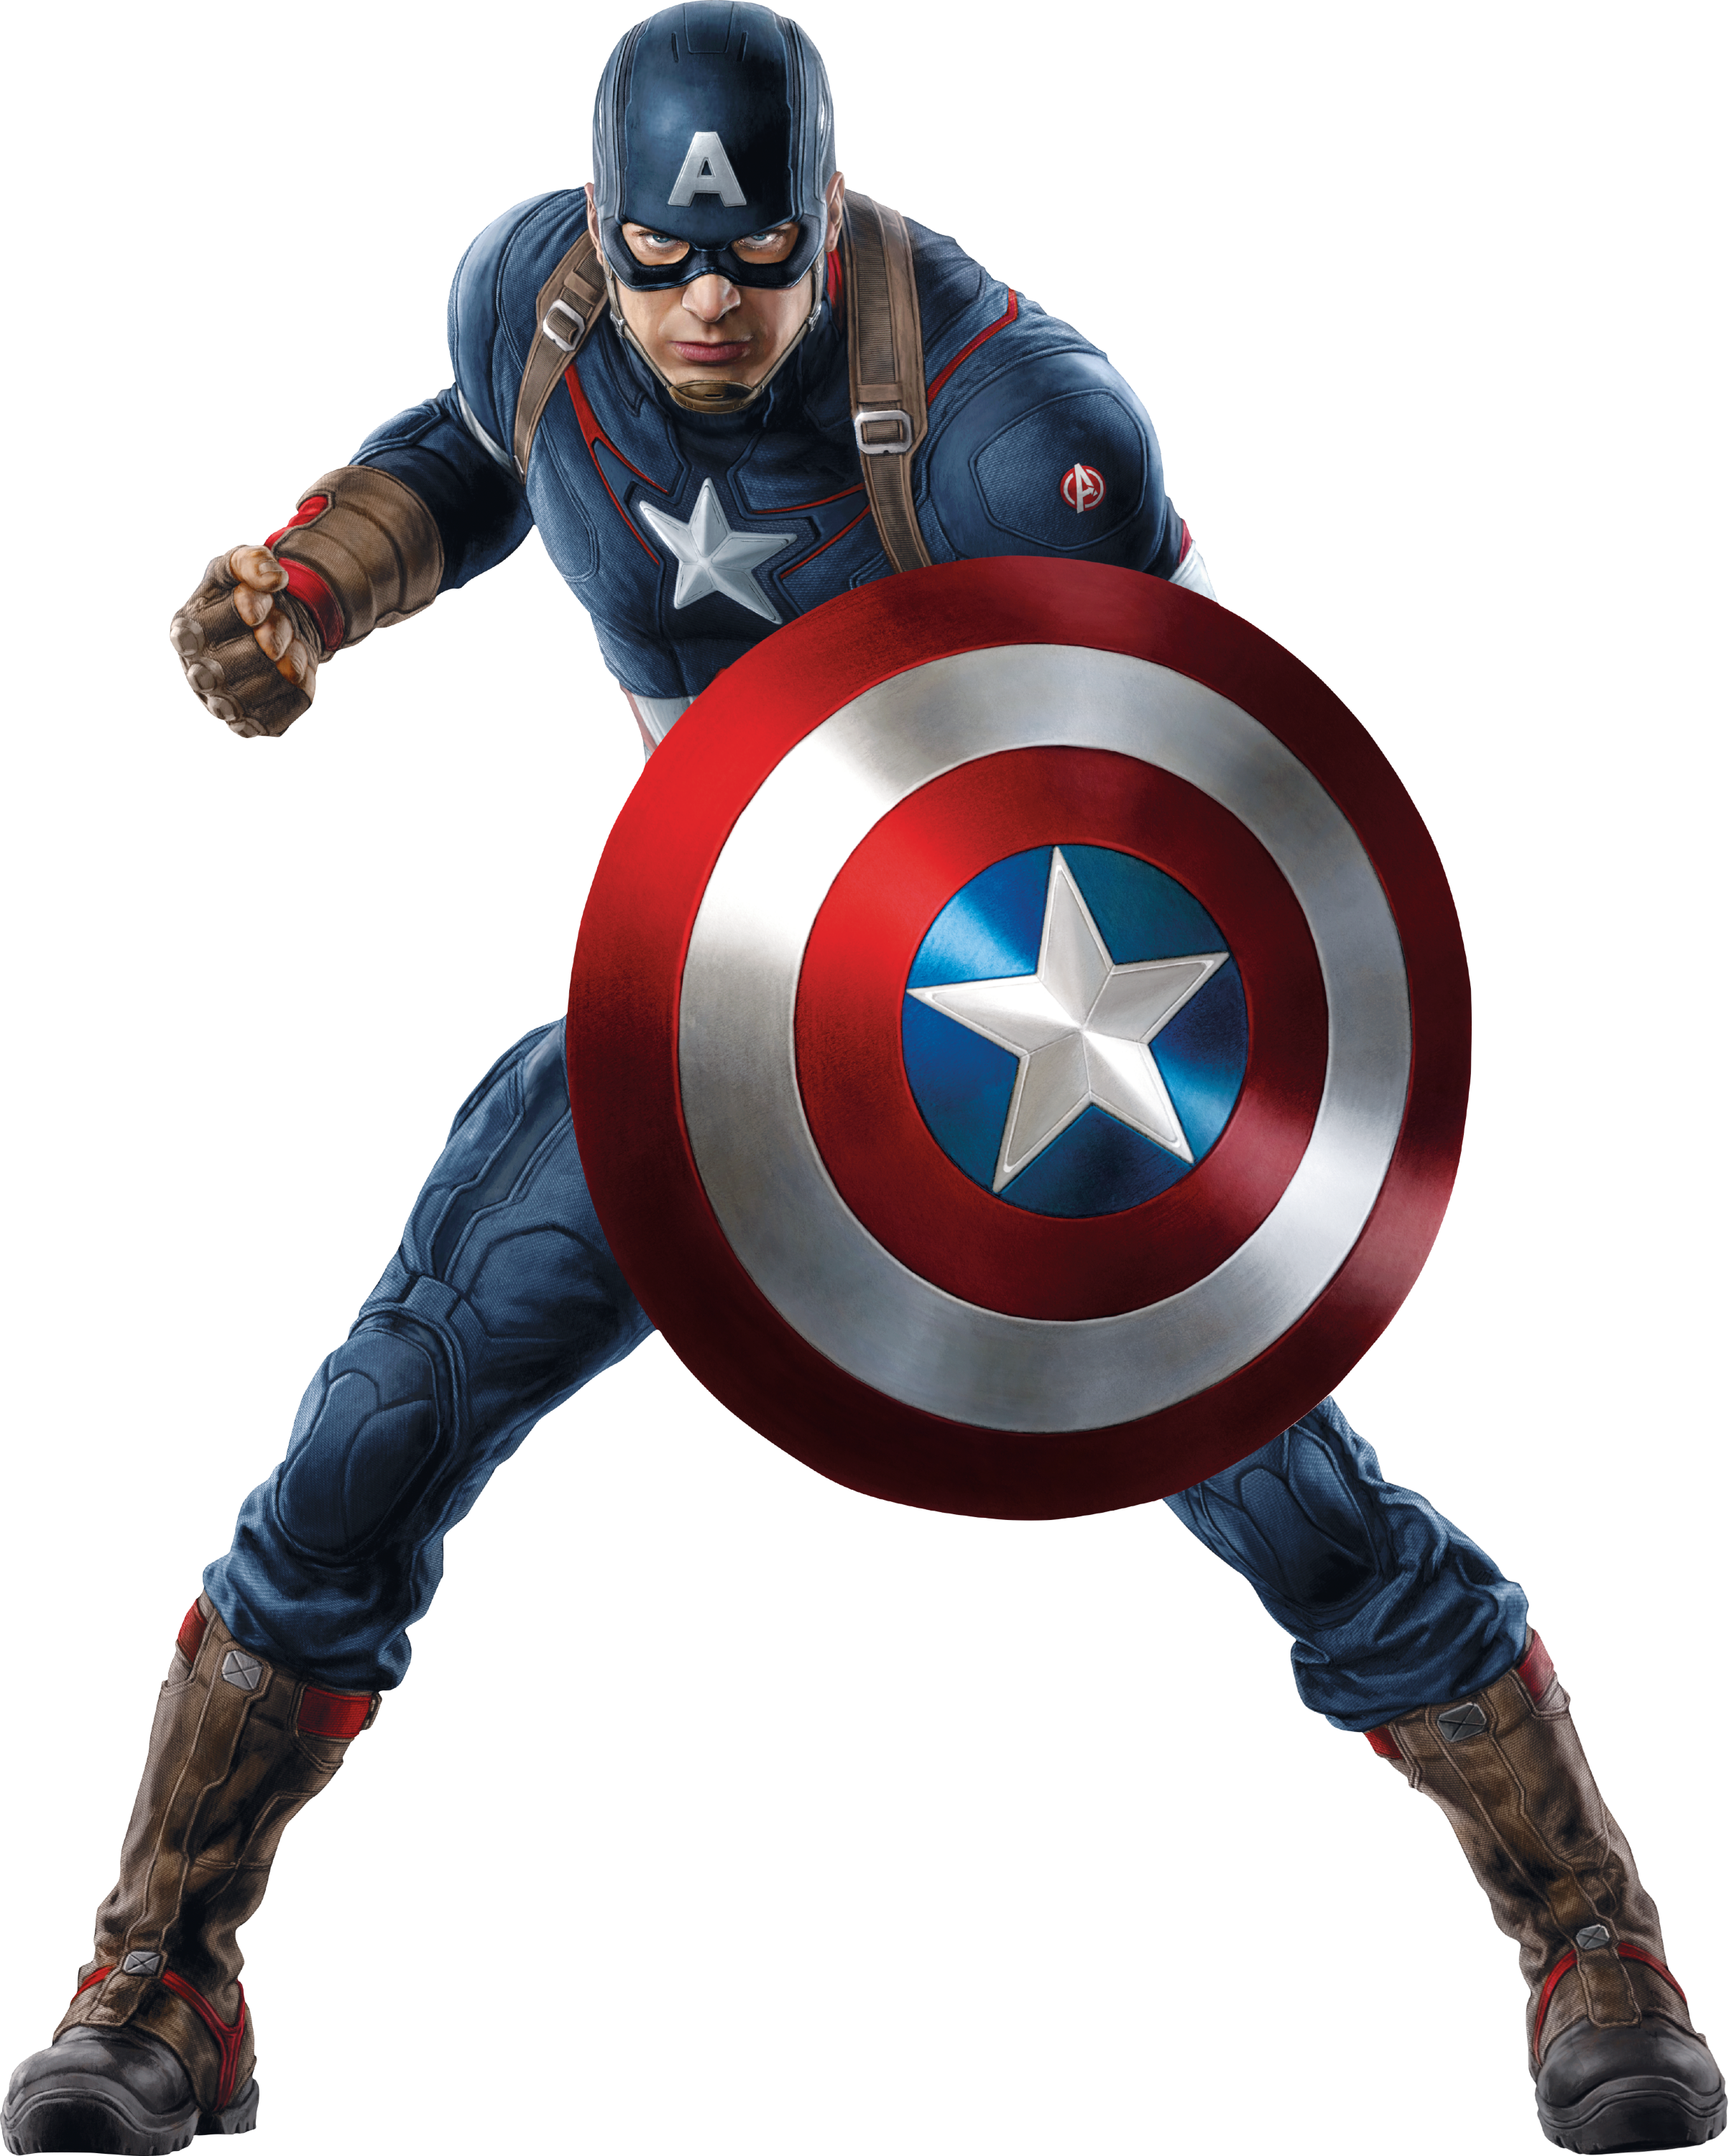 Captain America PNG images free download.